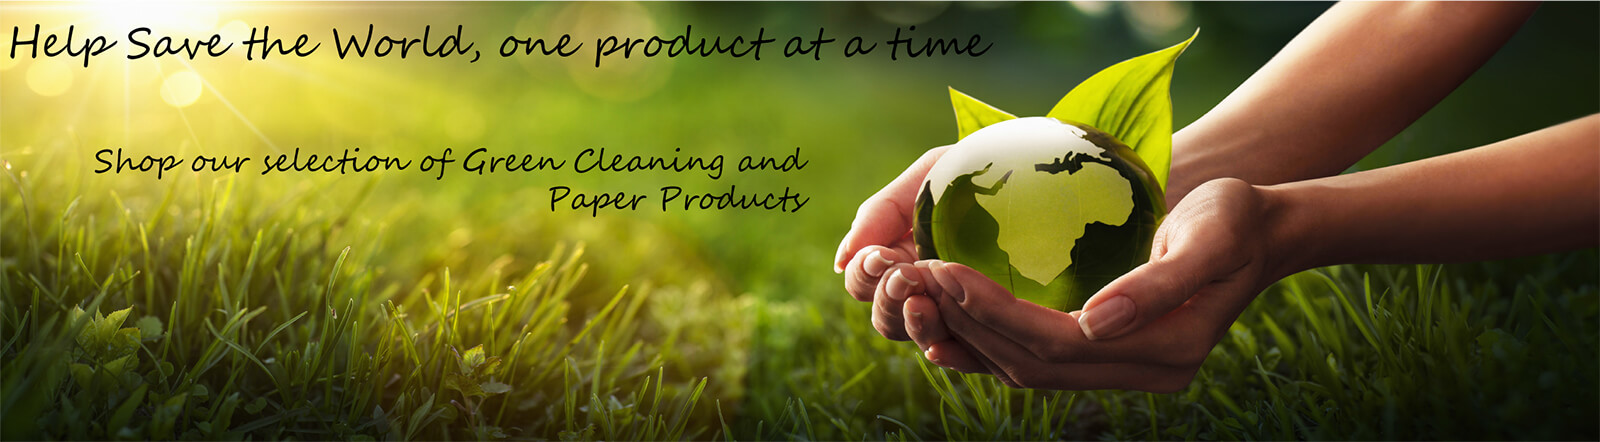 green-products-banner-opt.jpg